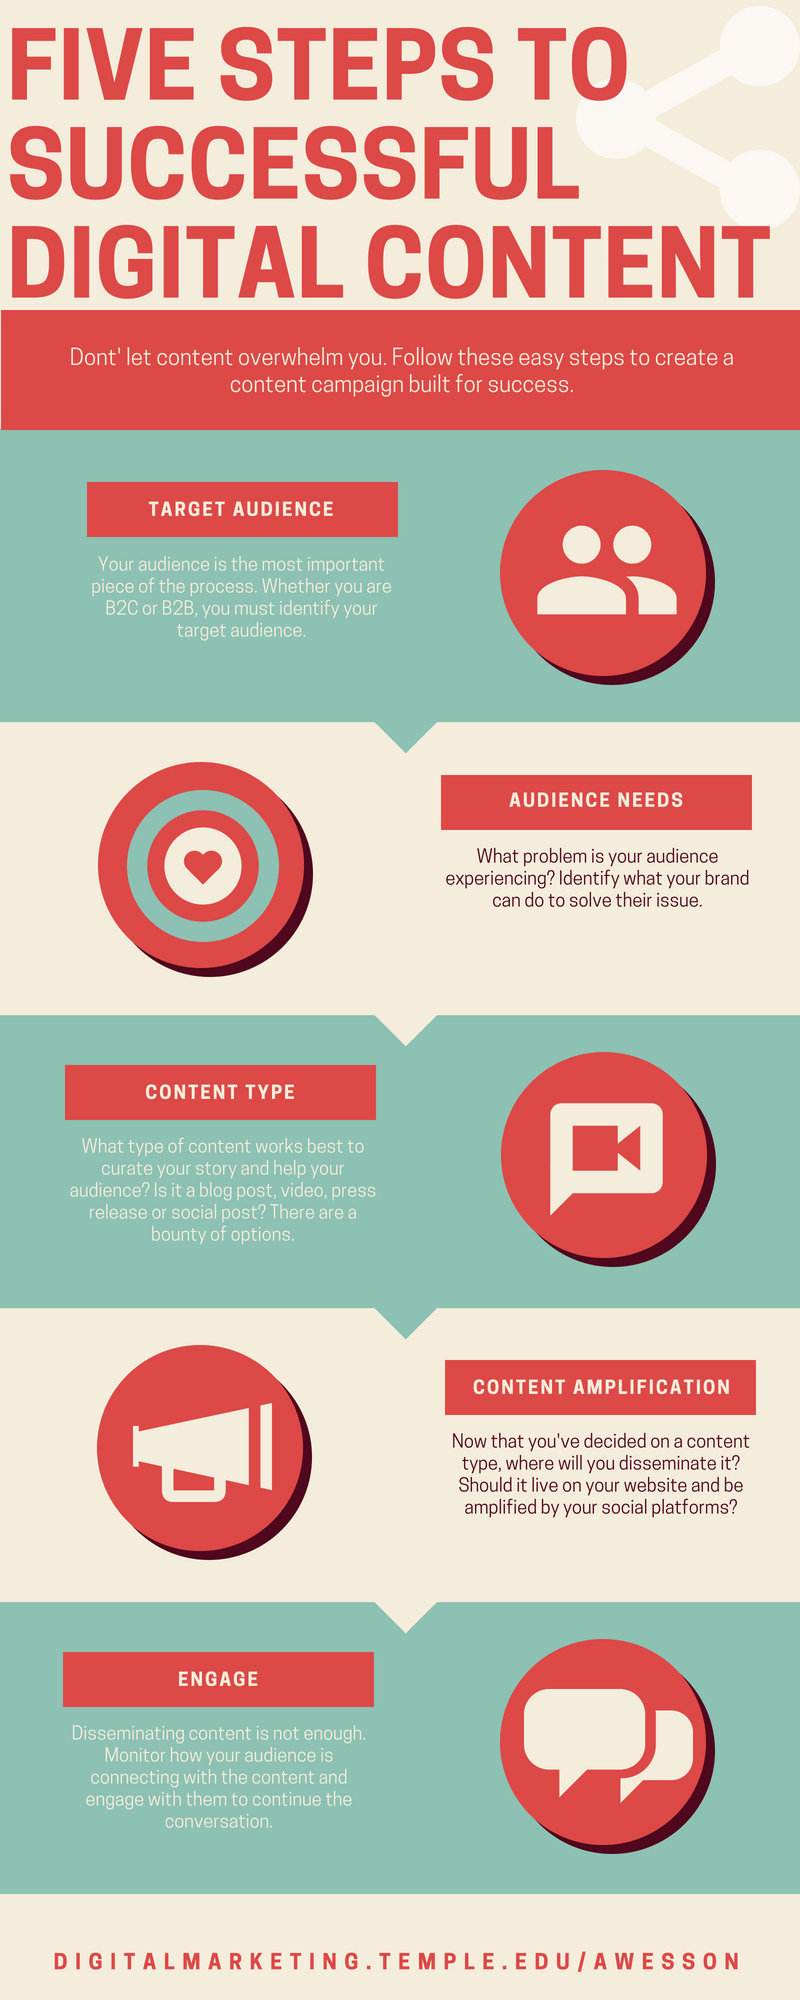 Five Steps to Successful Digital Content Marketing Infographic